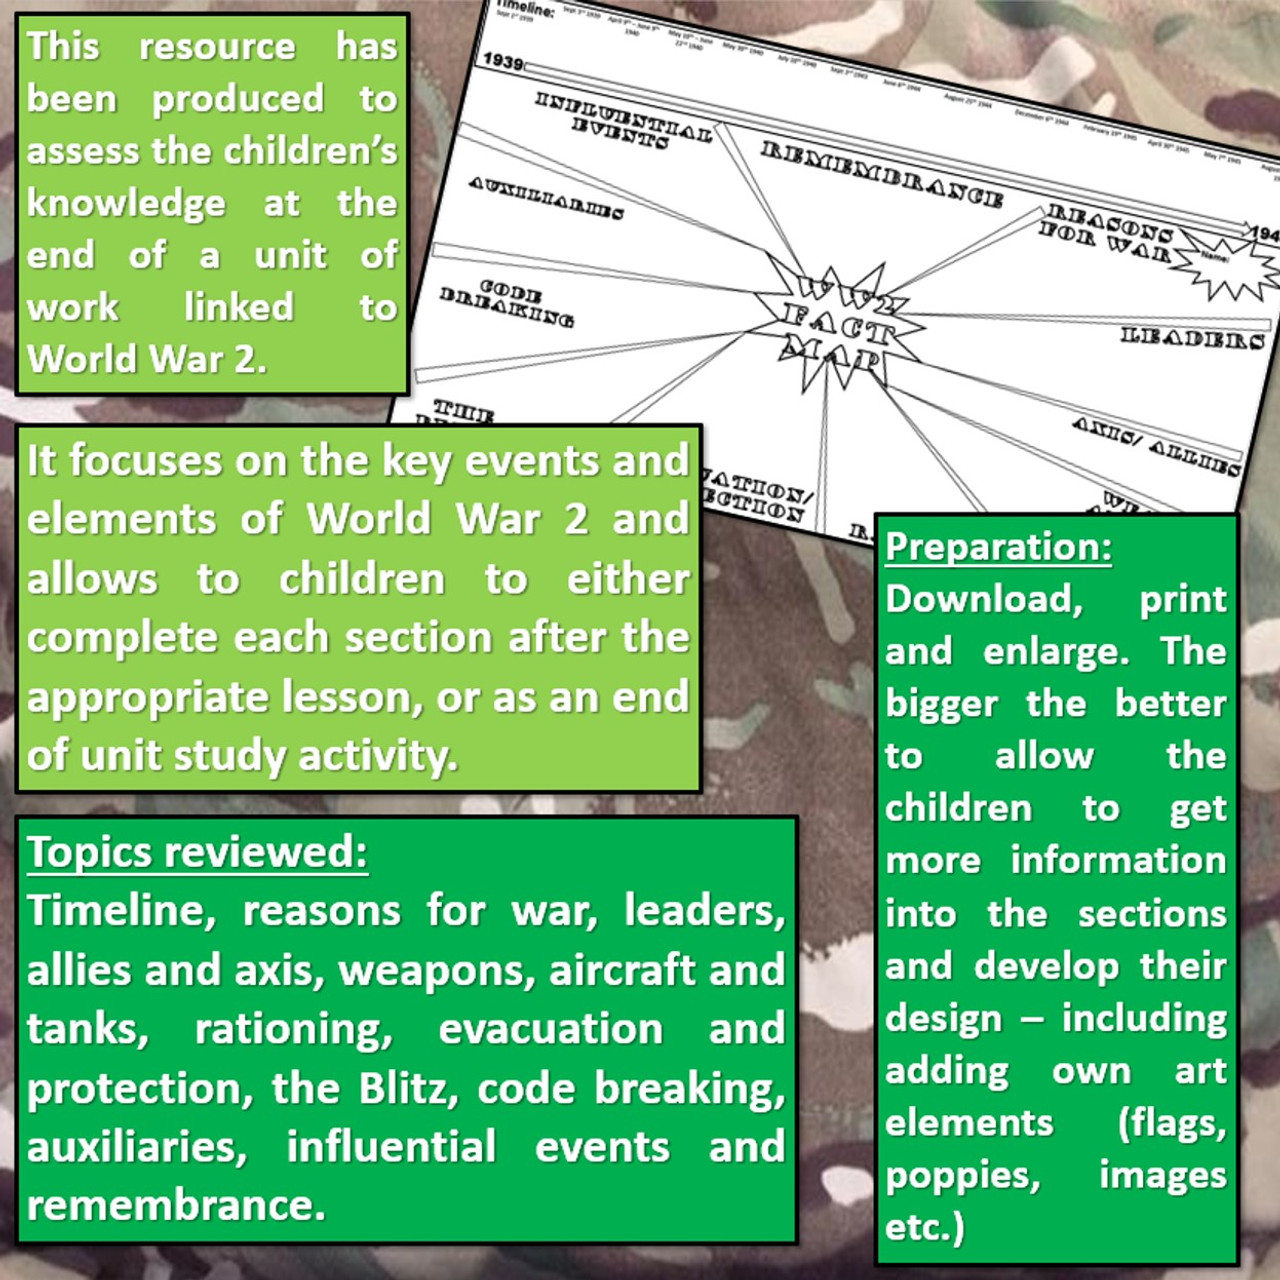 World War Two - Evaluation Poster to assess learning